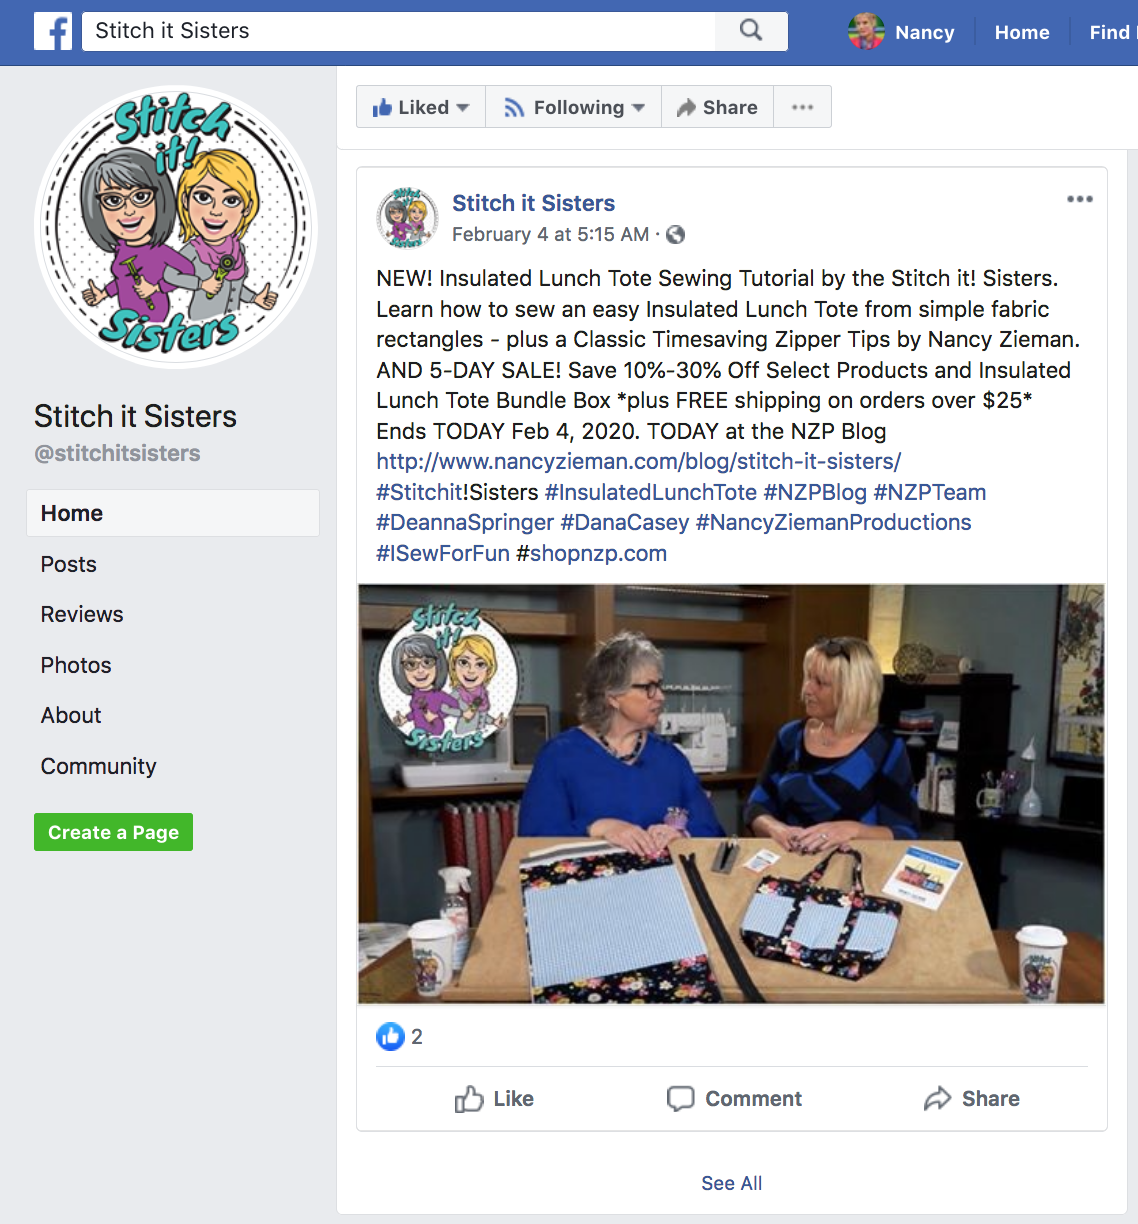 Follow The Stitch it! Sisters on Facebook